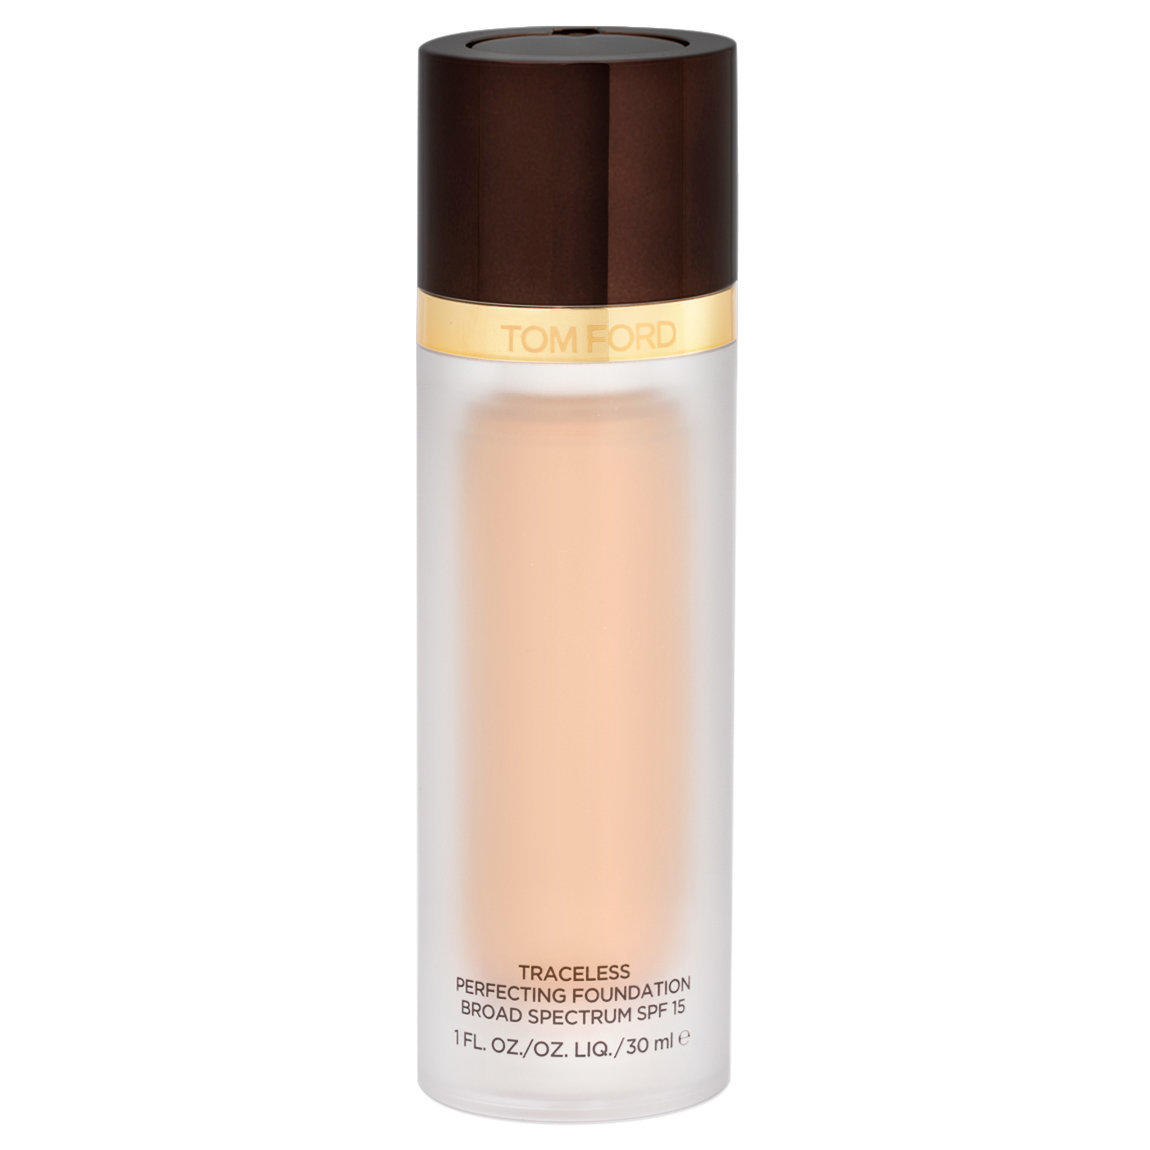 Tom Ford Traceless Perfecting Foundation Cream 1.5